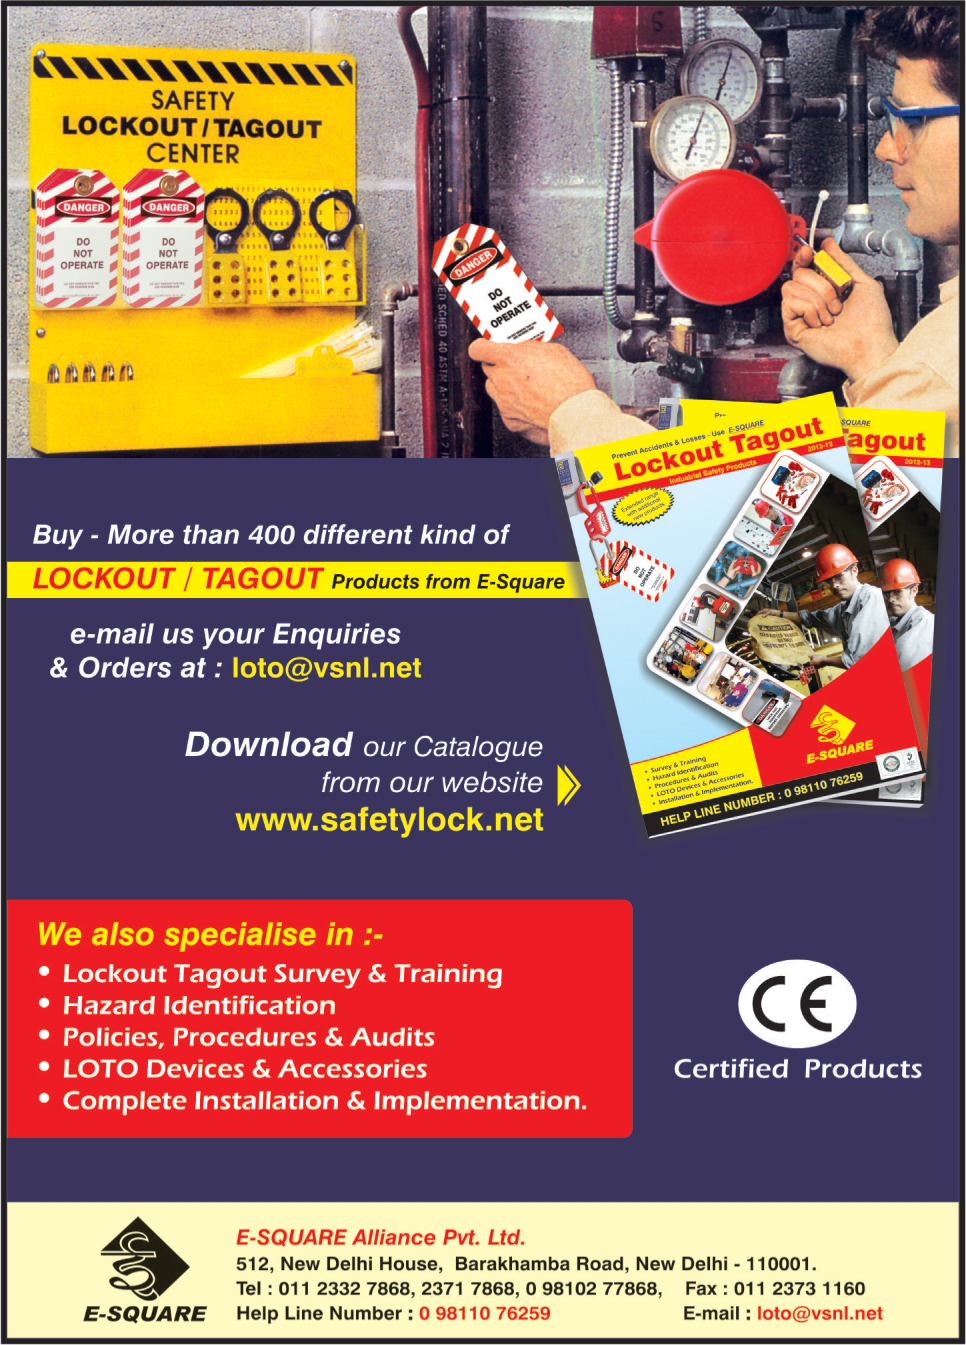 Lockout Products, Tagout Products, Lockout Tagout Products, Loto Devices, Loto Accessories,